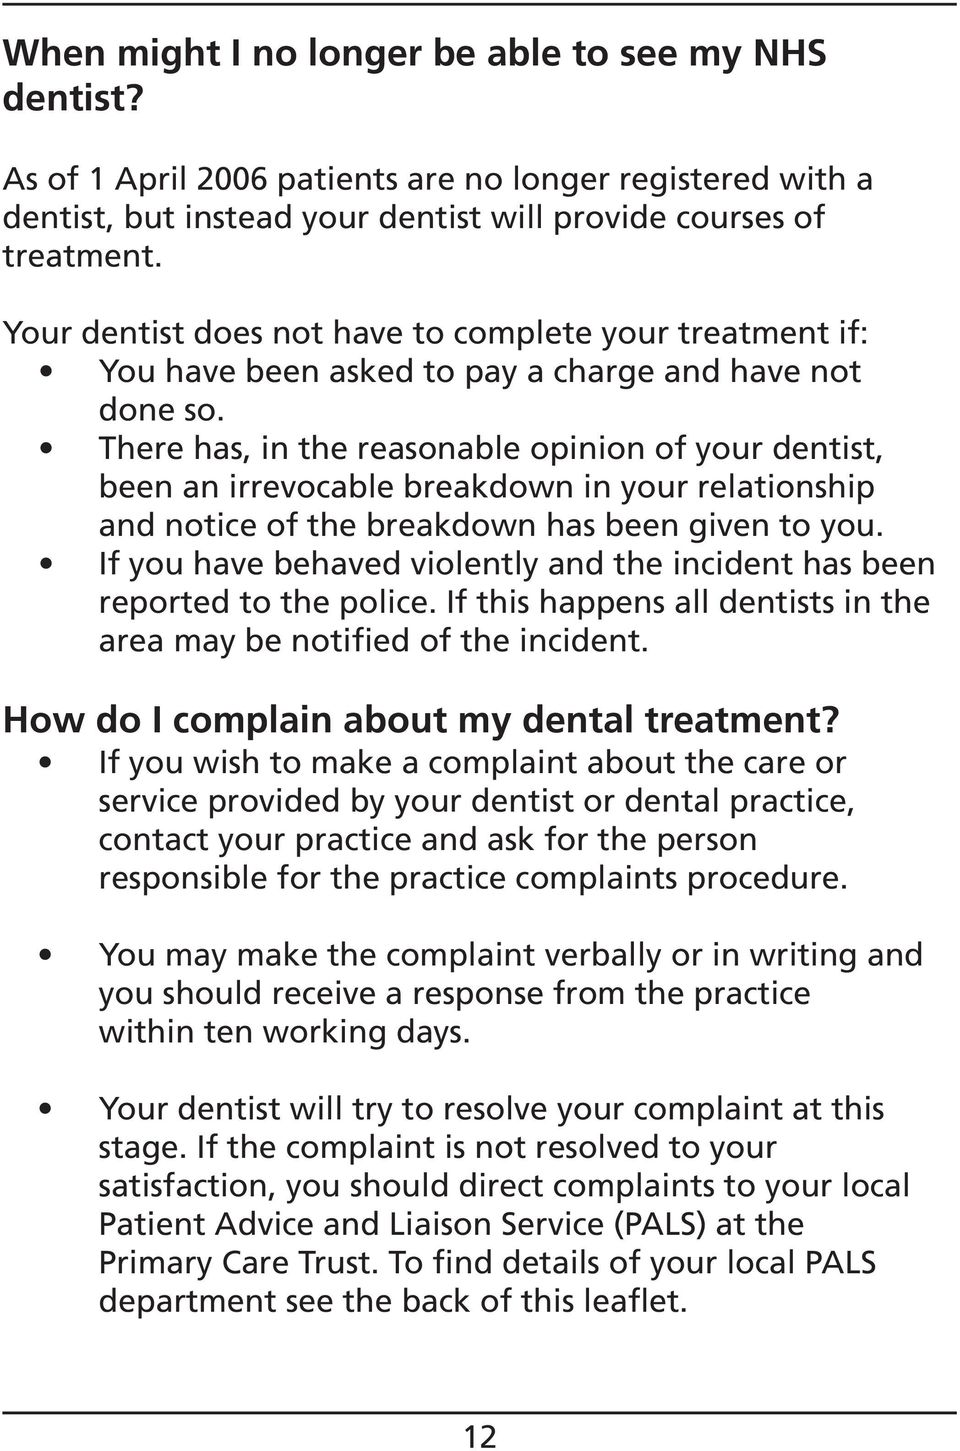 There has, in the reasonable opinion of your dentist, been an irrevocable breakdown in your relationship and notice of the breakdown has been given to you.